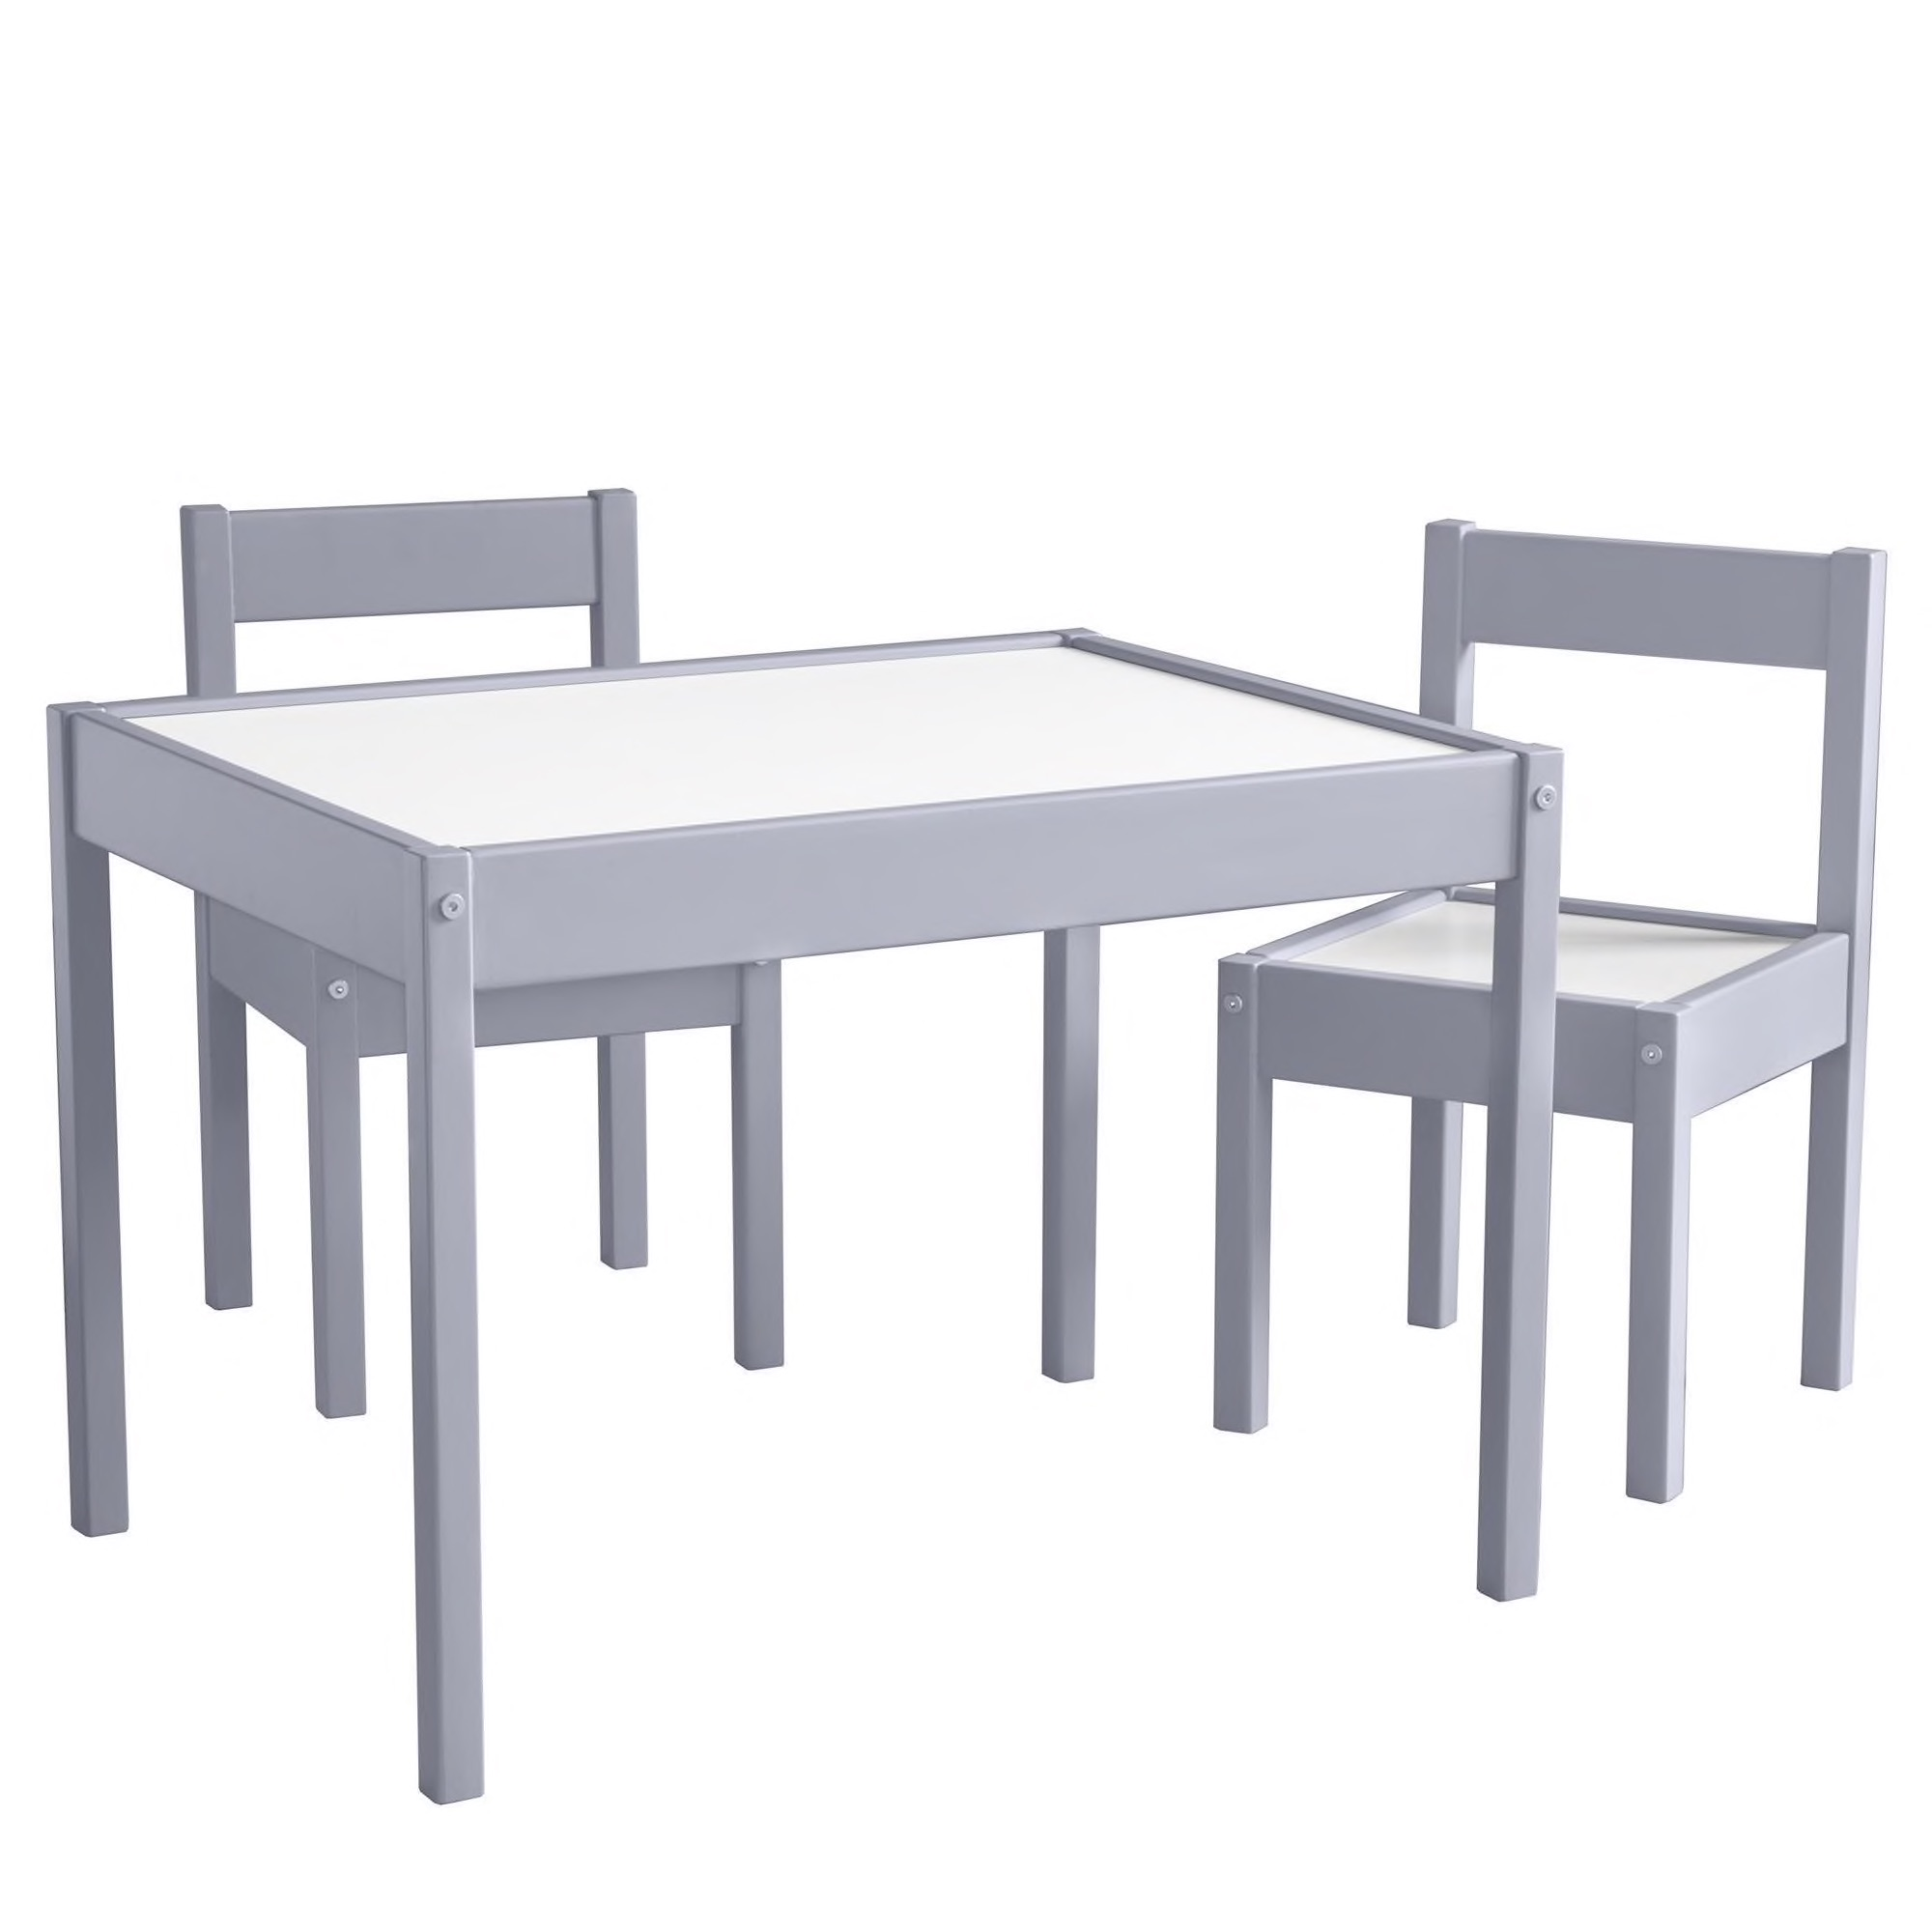 Baby-Relax-Hunter-Grey-3-piece-Kiddy-Table-Chair-Set-328c0c7f-daf0-4526-bb38-3b8d29d9db60.jpg copy.jpg